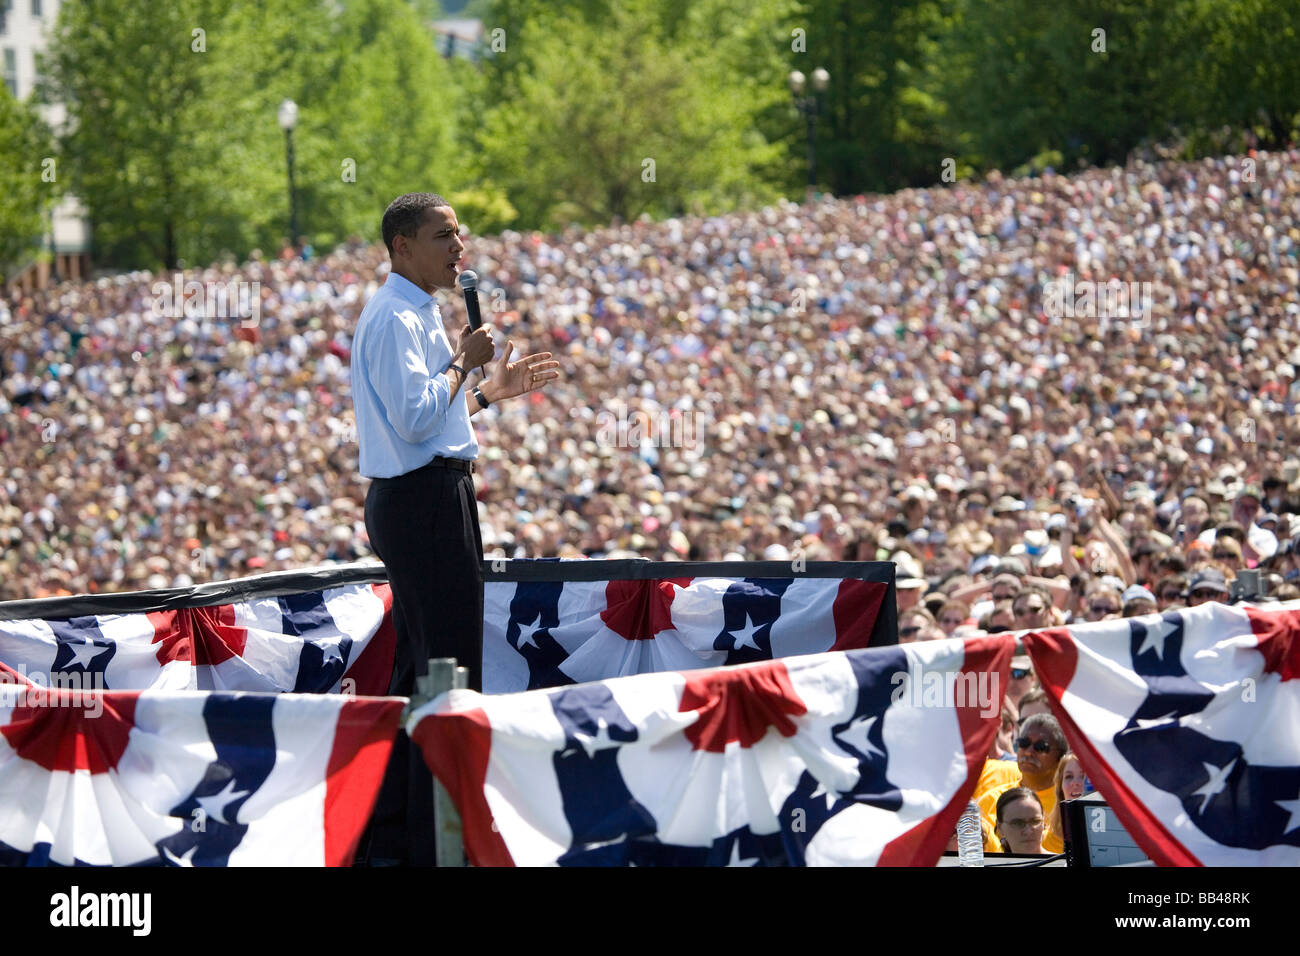 Presidential candidate and Democratic front runner, Barack ...